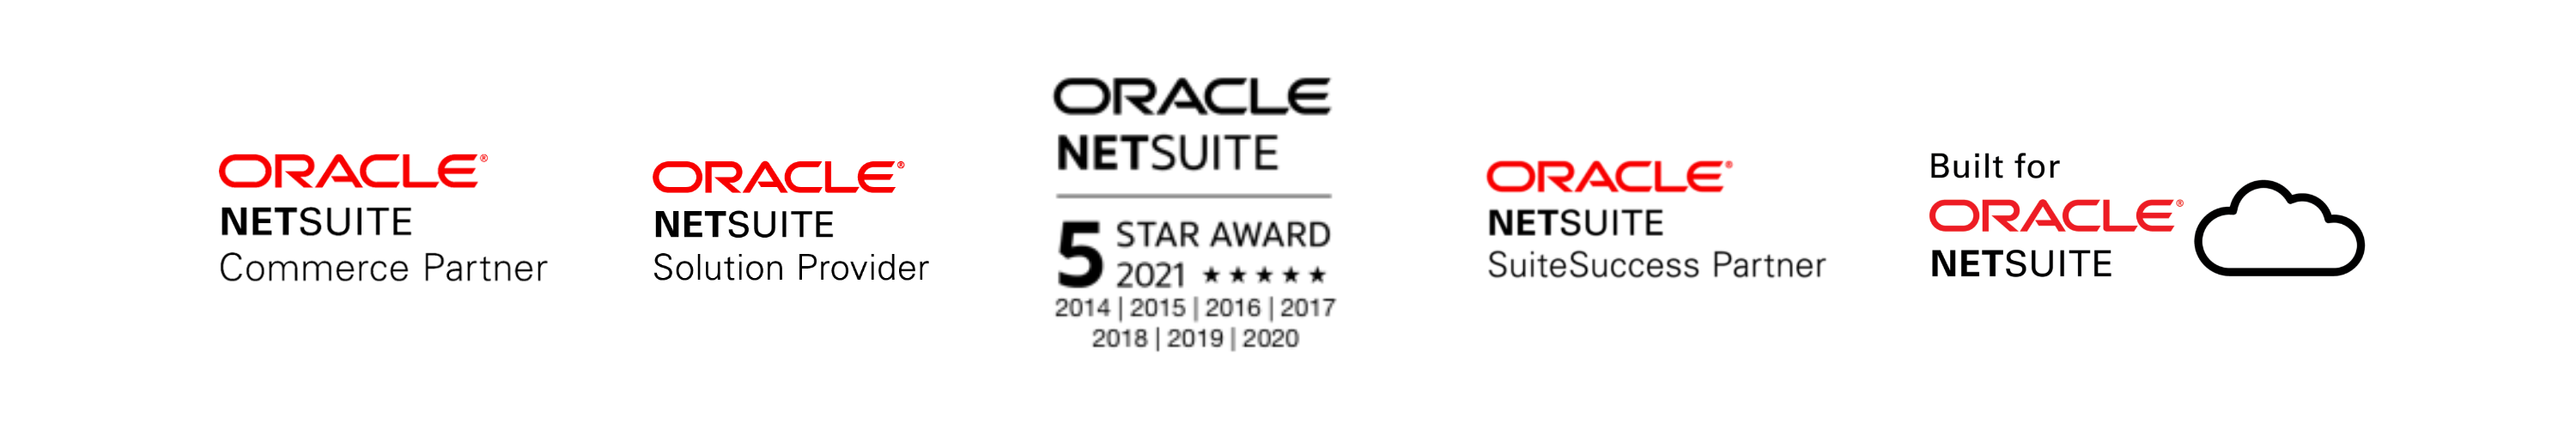 oracle-netsuite_2021